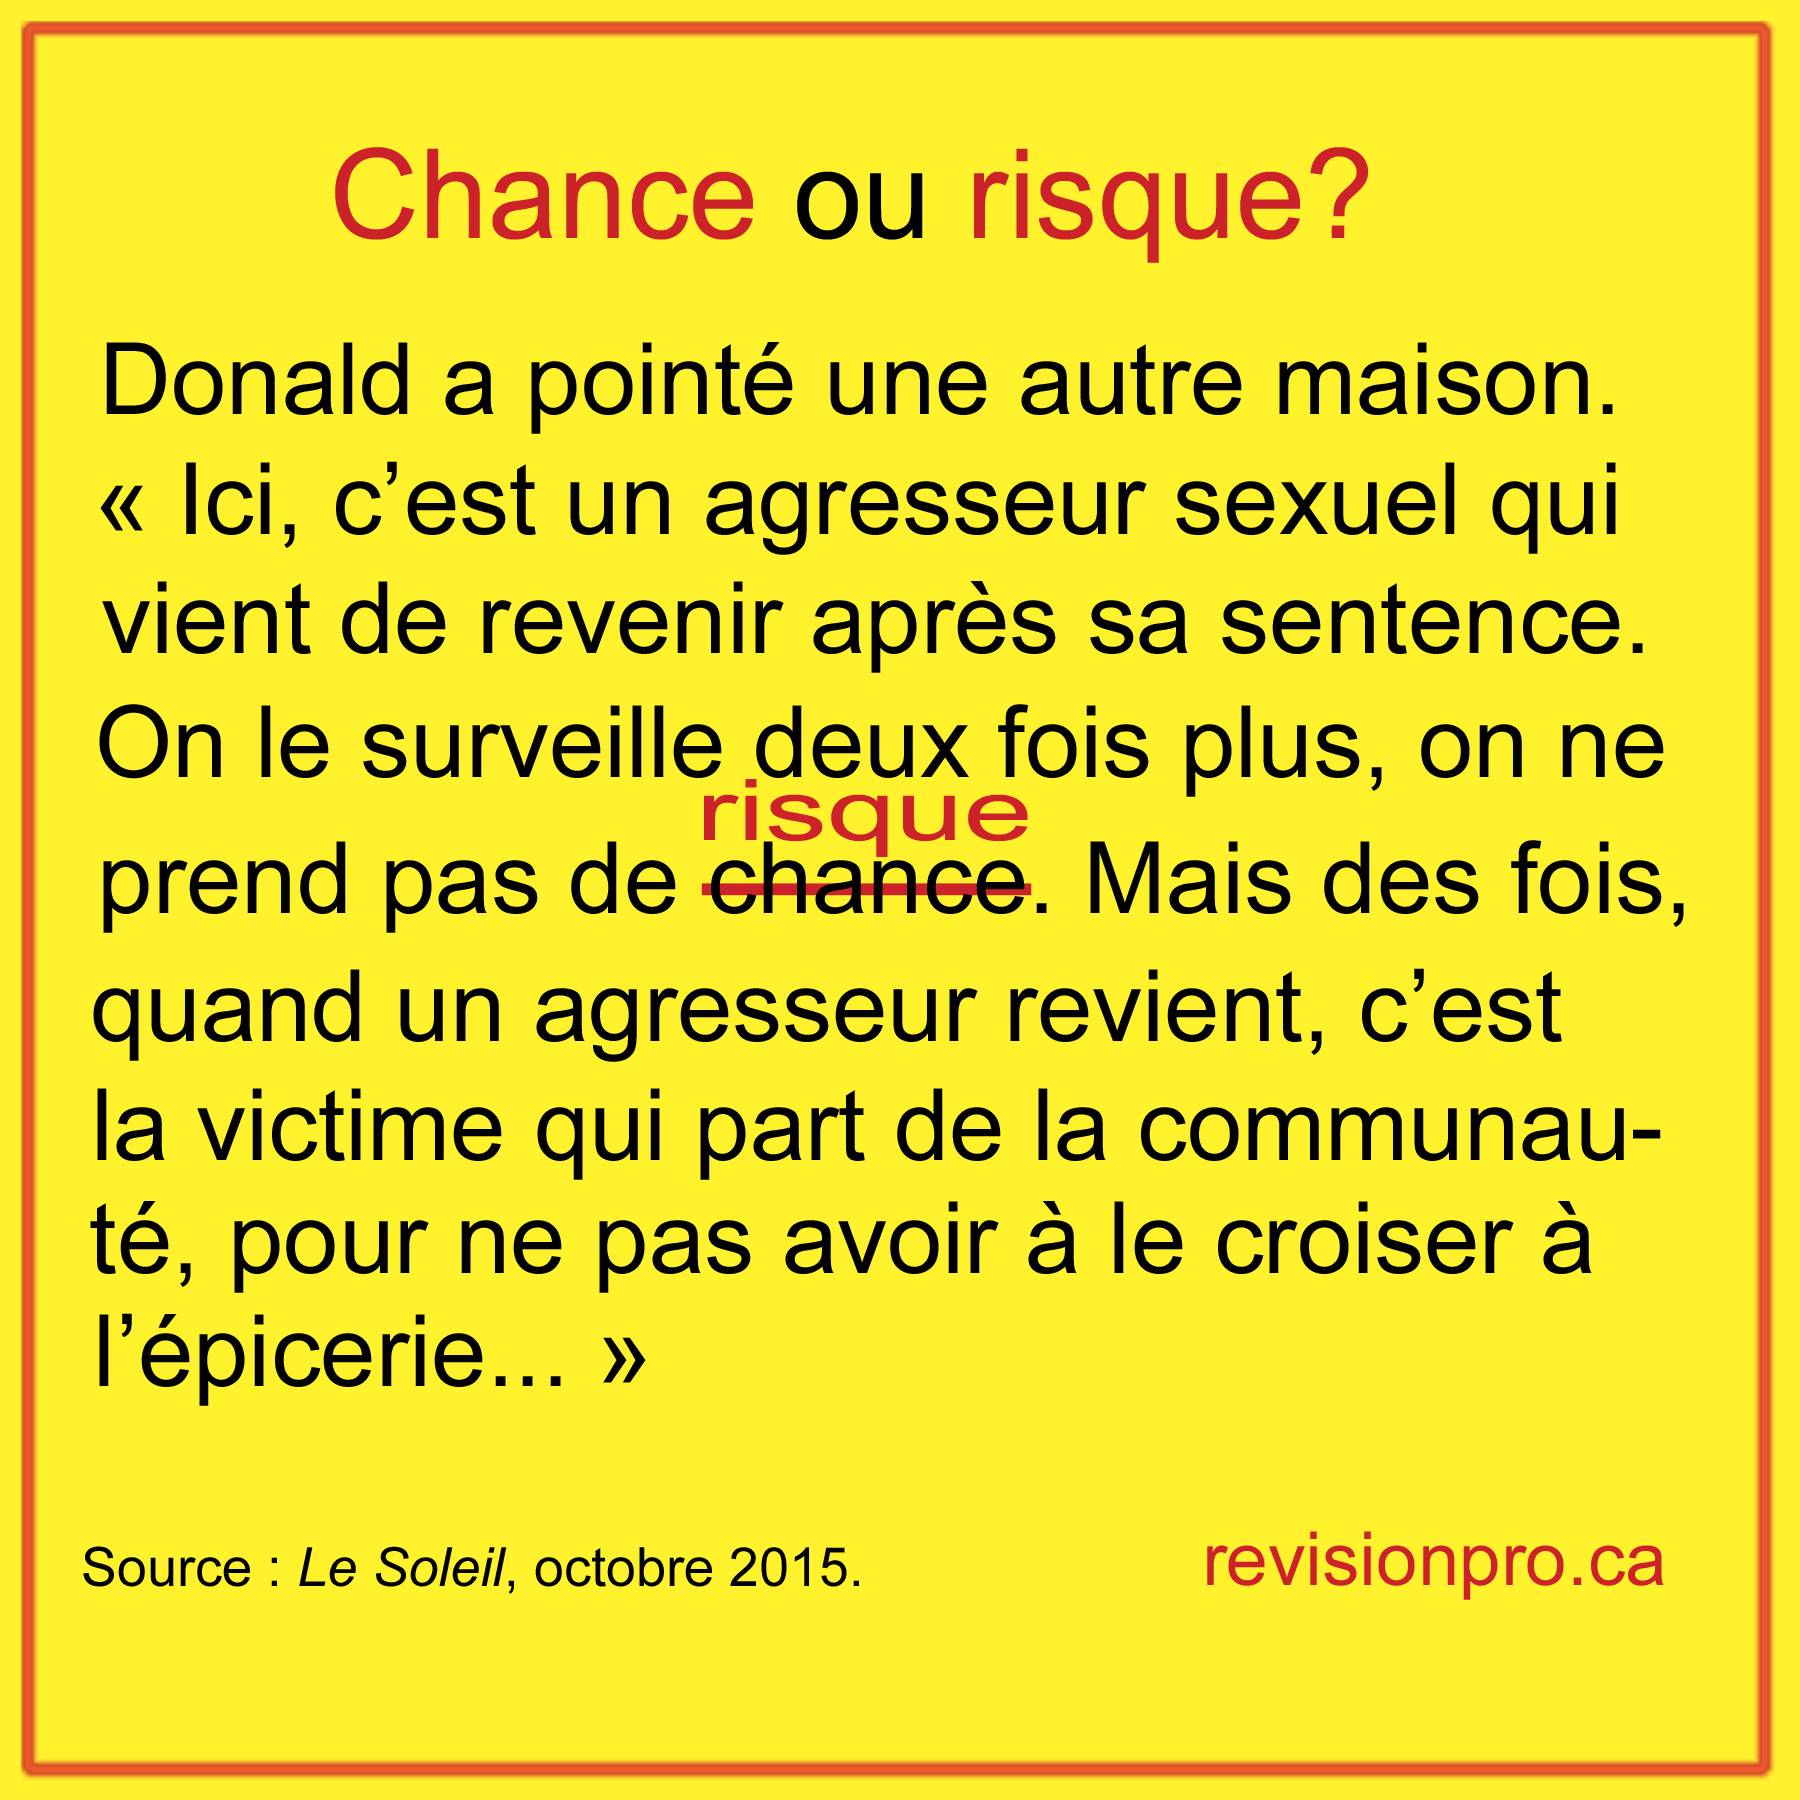 prendre une chance; prendre un risque; to take a chance; traduction; rédaction; révision; correction de texte; bilinguisme